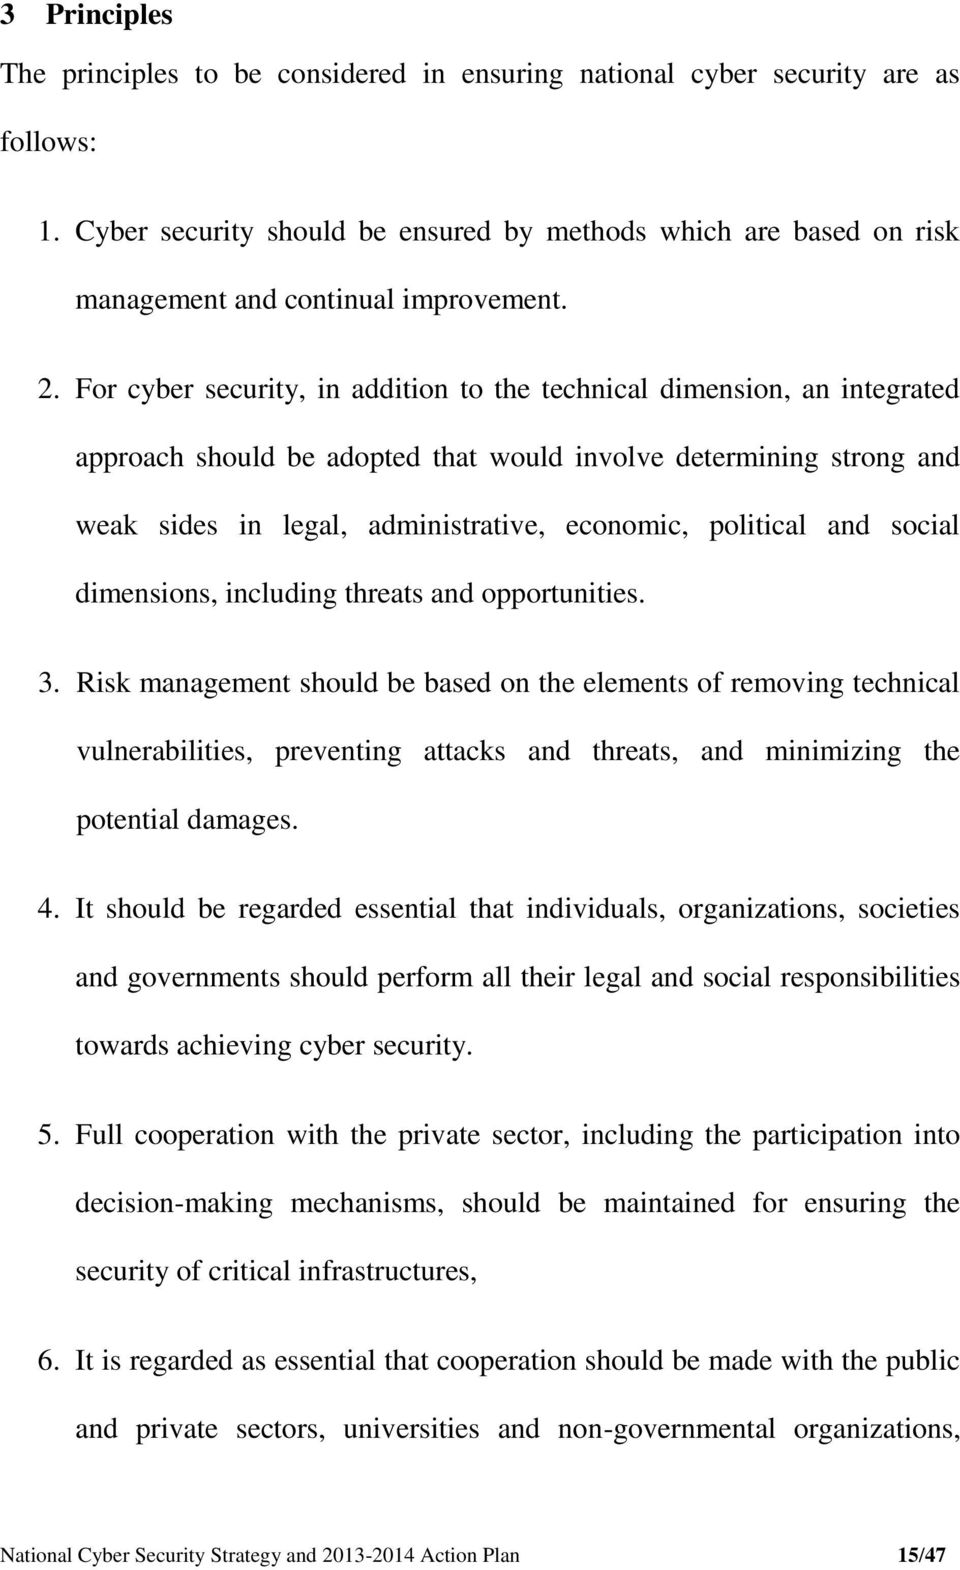 For cyber security, in addition to the technical dimension, an integrated approach should be adopted that would involve determining strong and weak sides in legal, administrative, economic, political